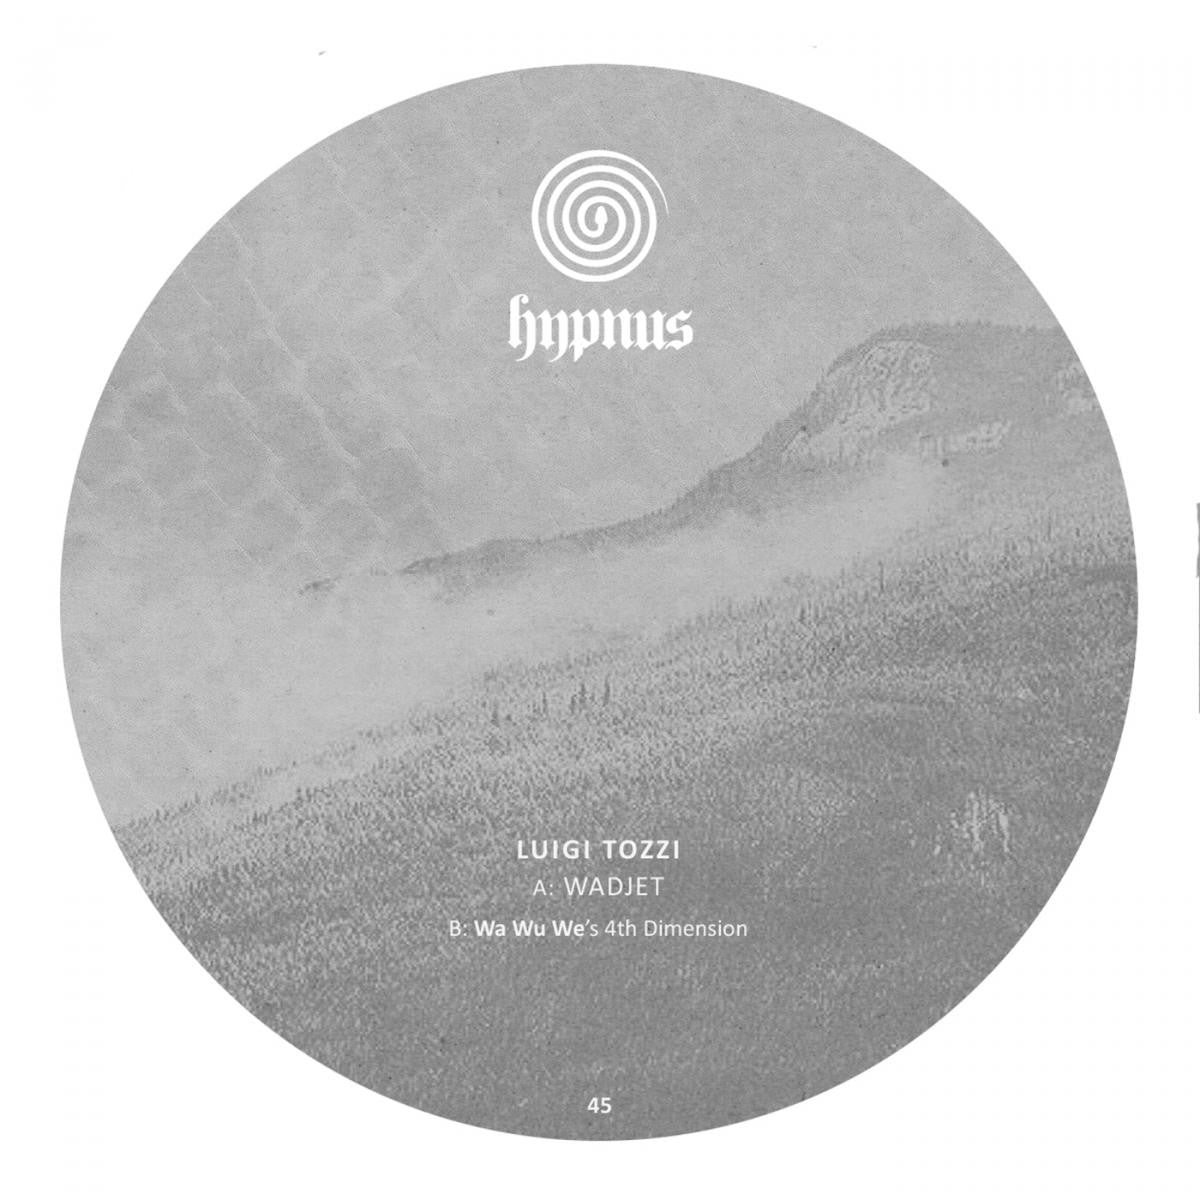 Luigi Tozzi - Wadjet [Wa Wu We Remix] 180g , Vinyl - Hypnus Records, Unearthed Sounds